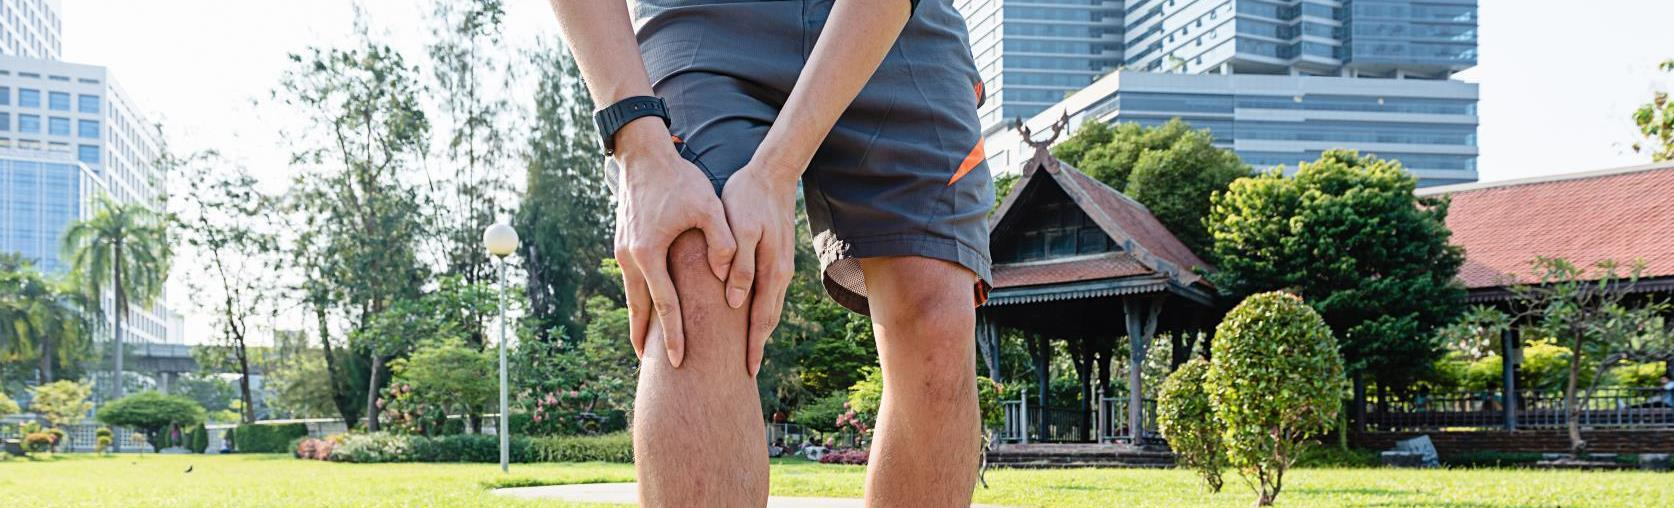 Medial Collateral Knee Ligament Injury Treatment & Management